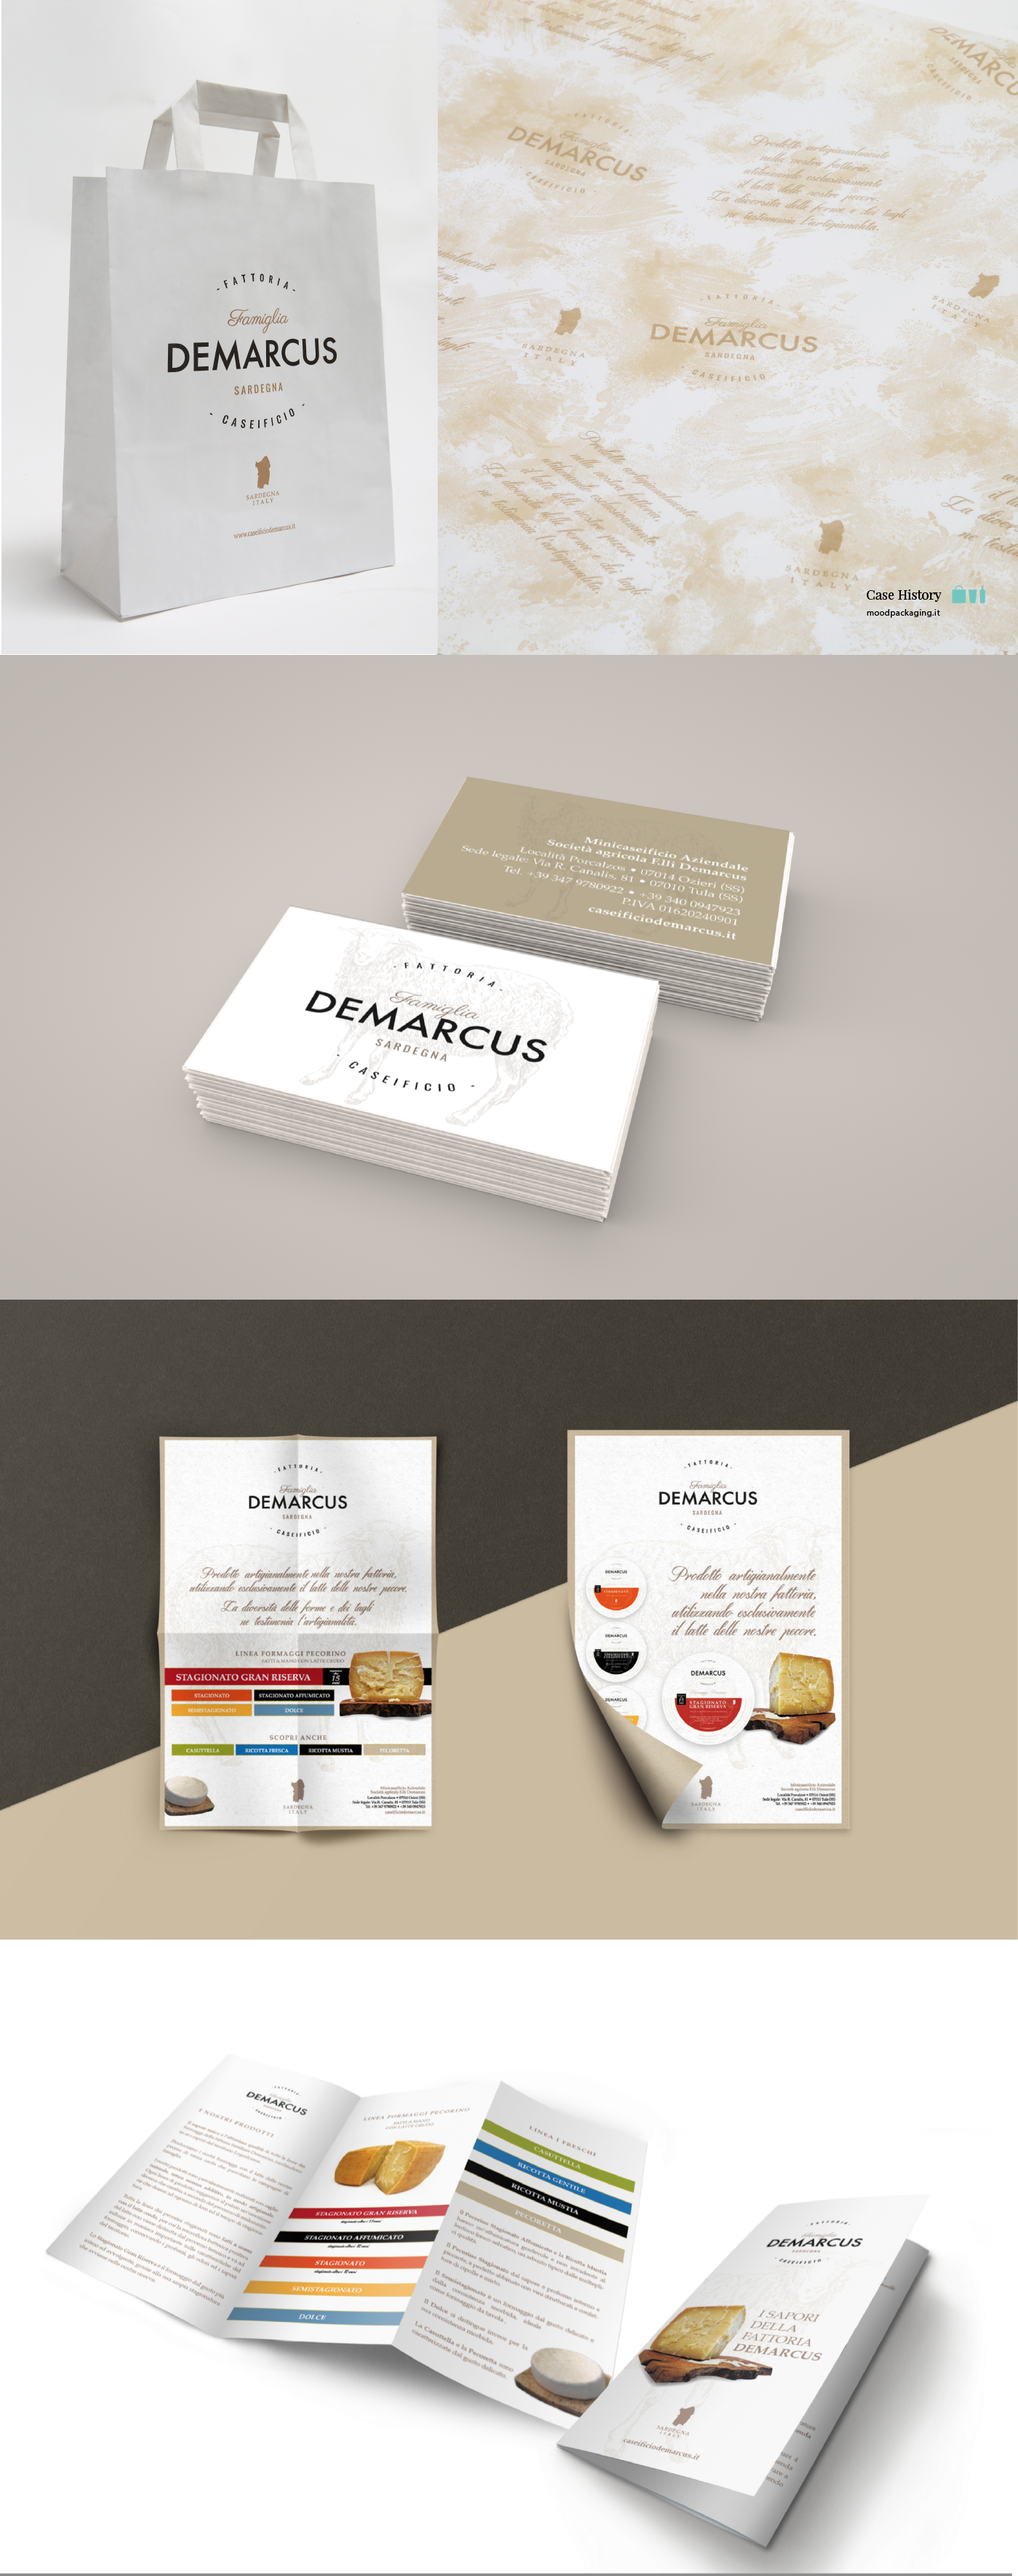 /packaging-casehistory-demarcus